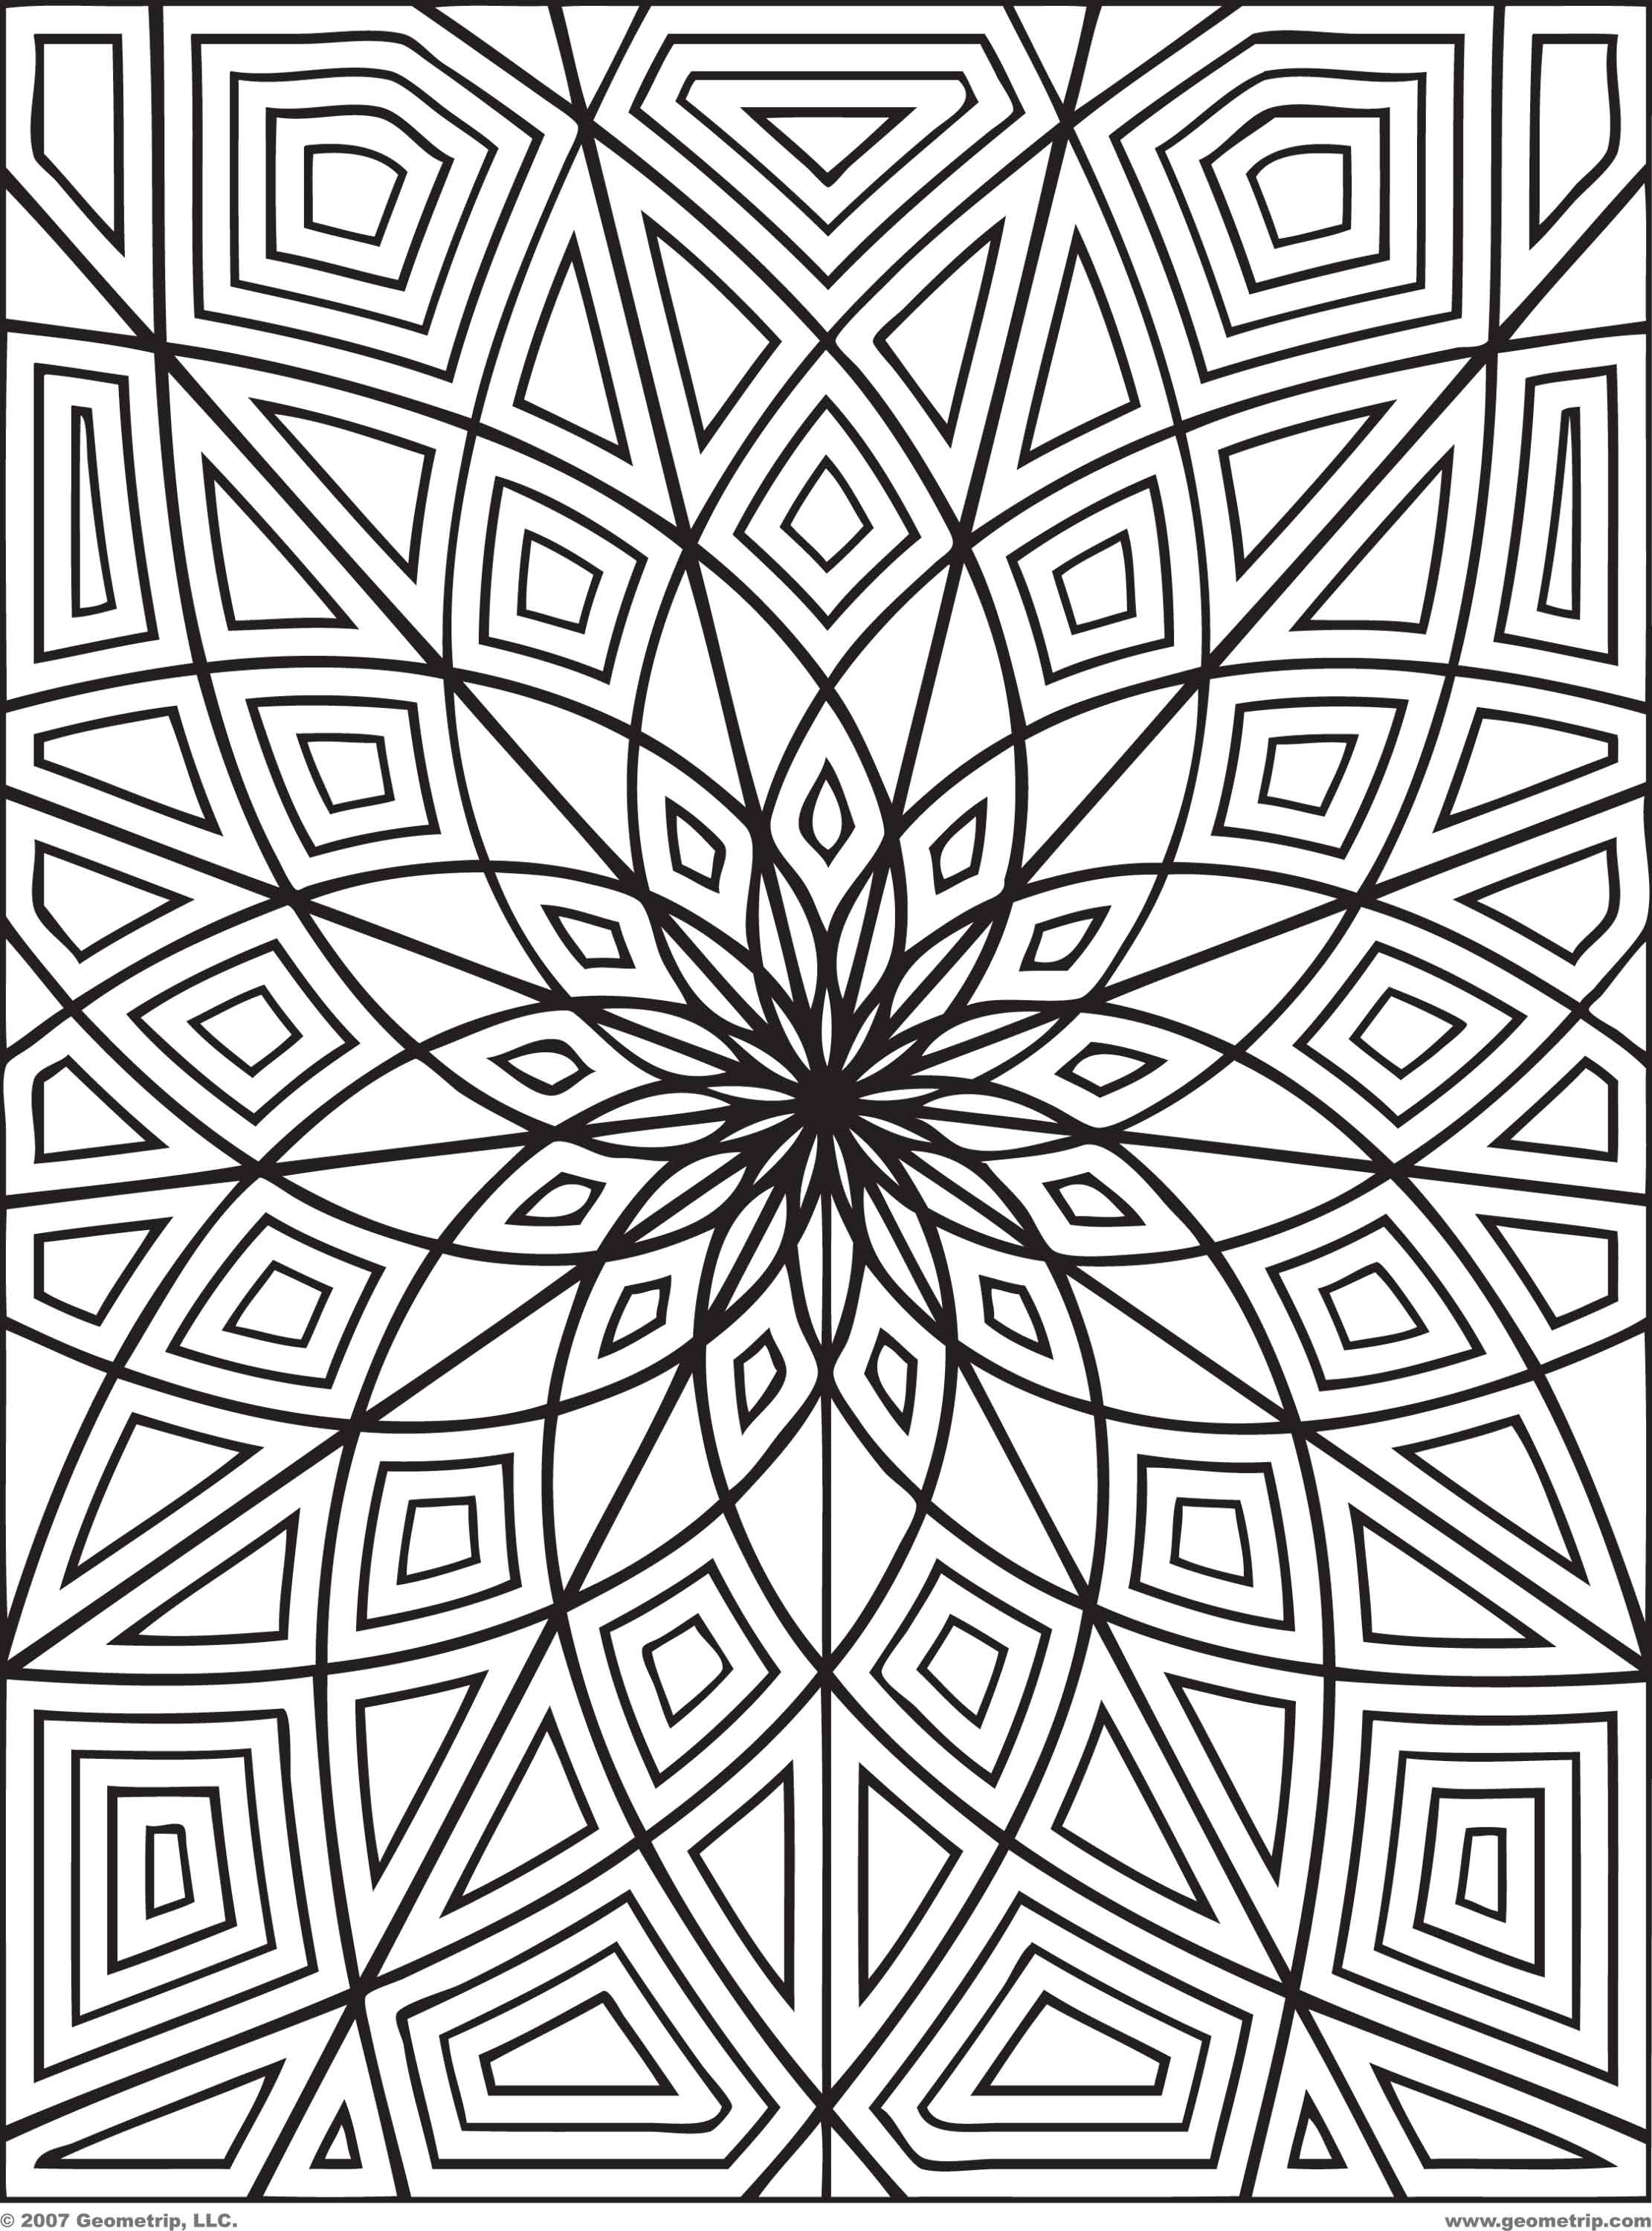 Detailed Coloring Pages To Download And Print For Free